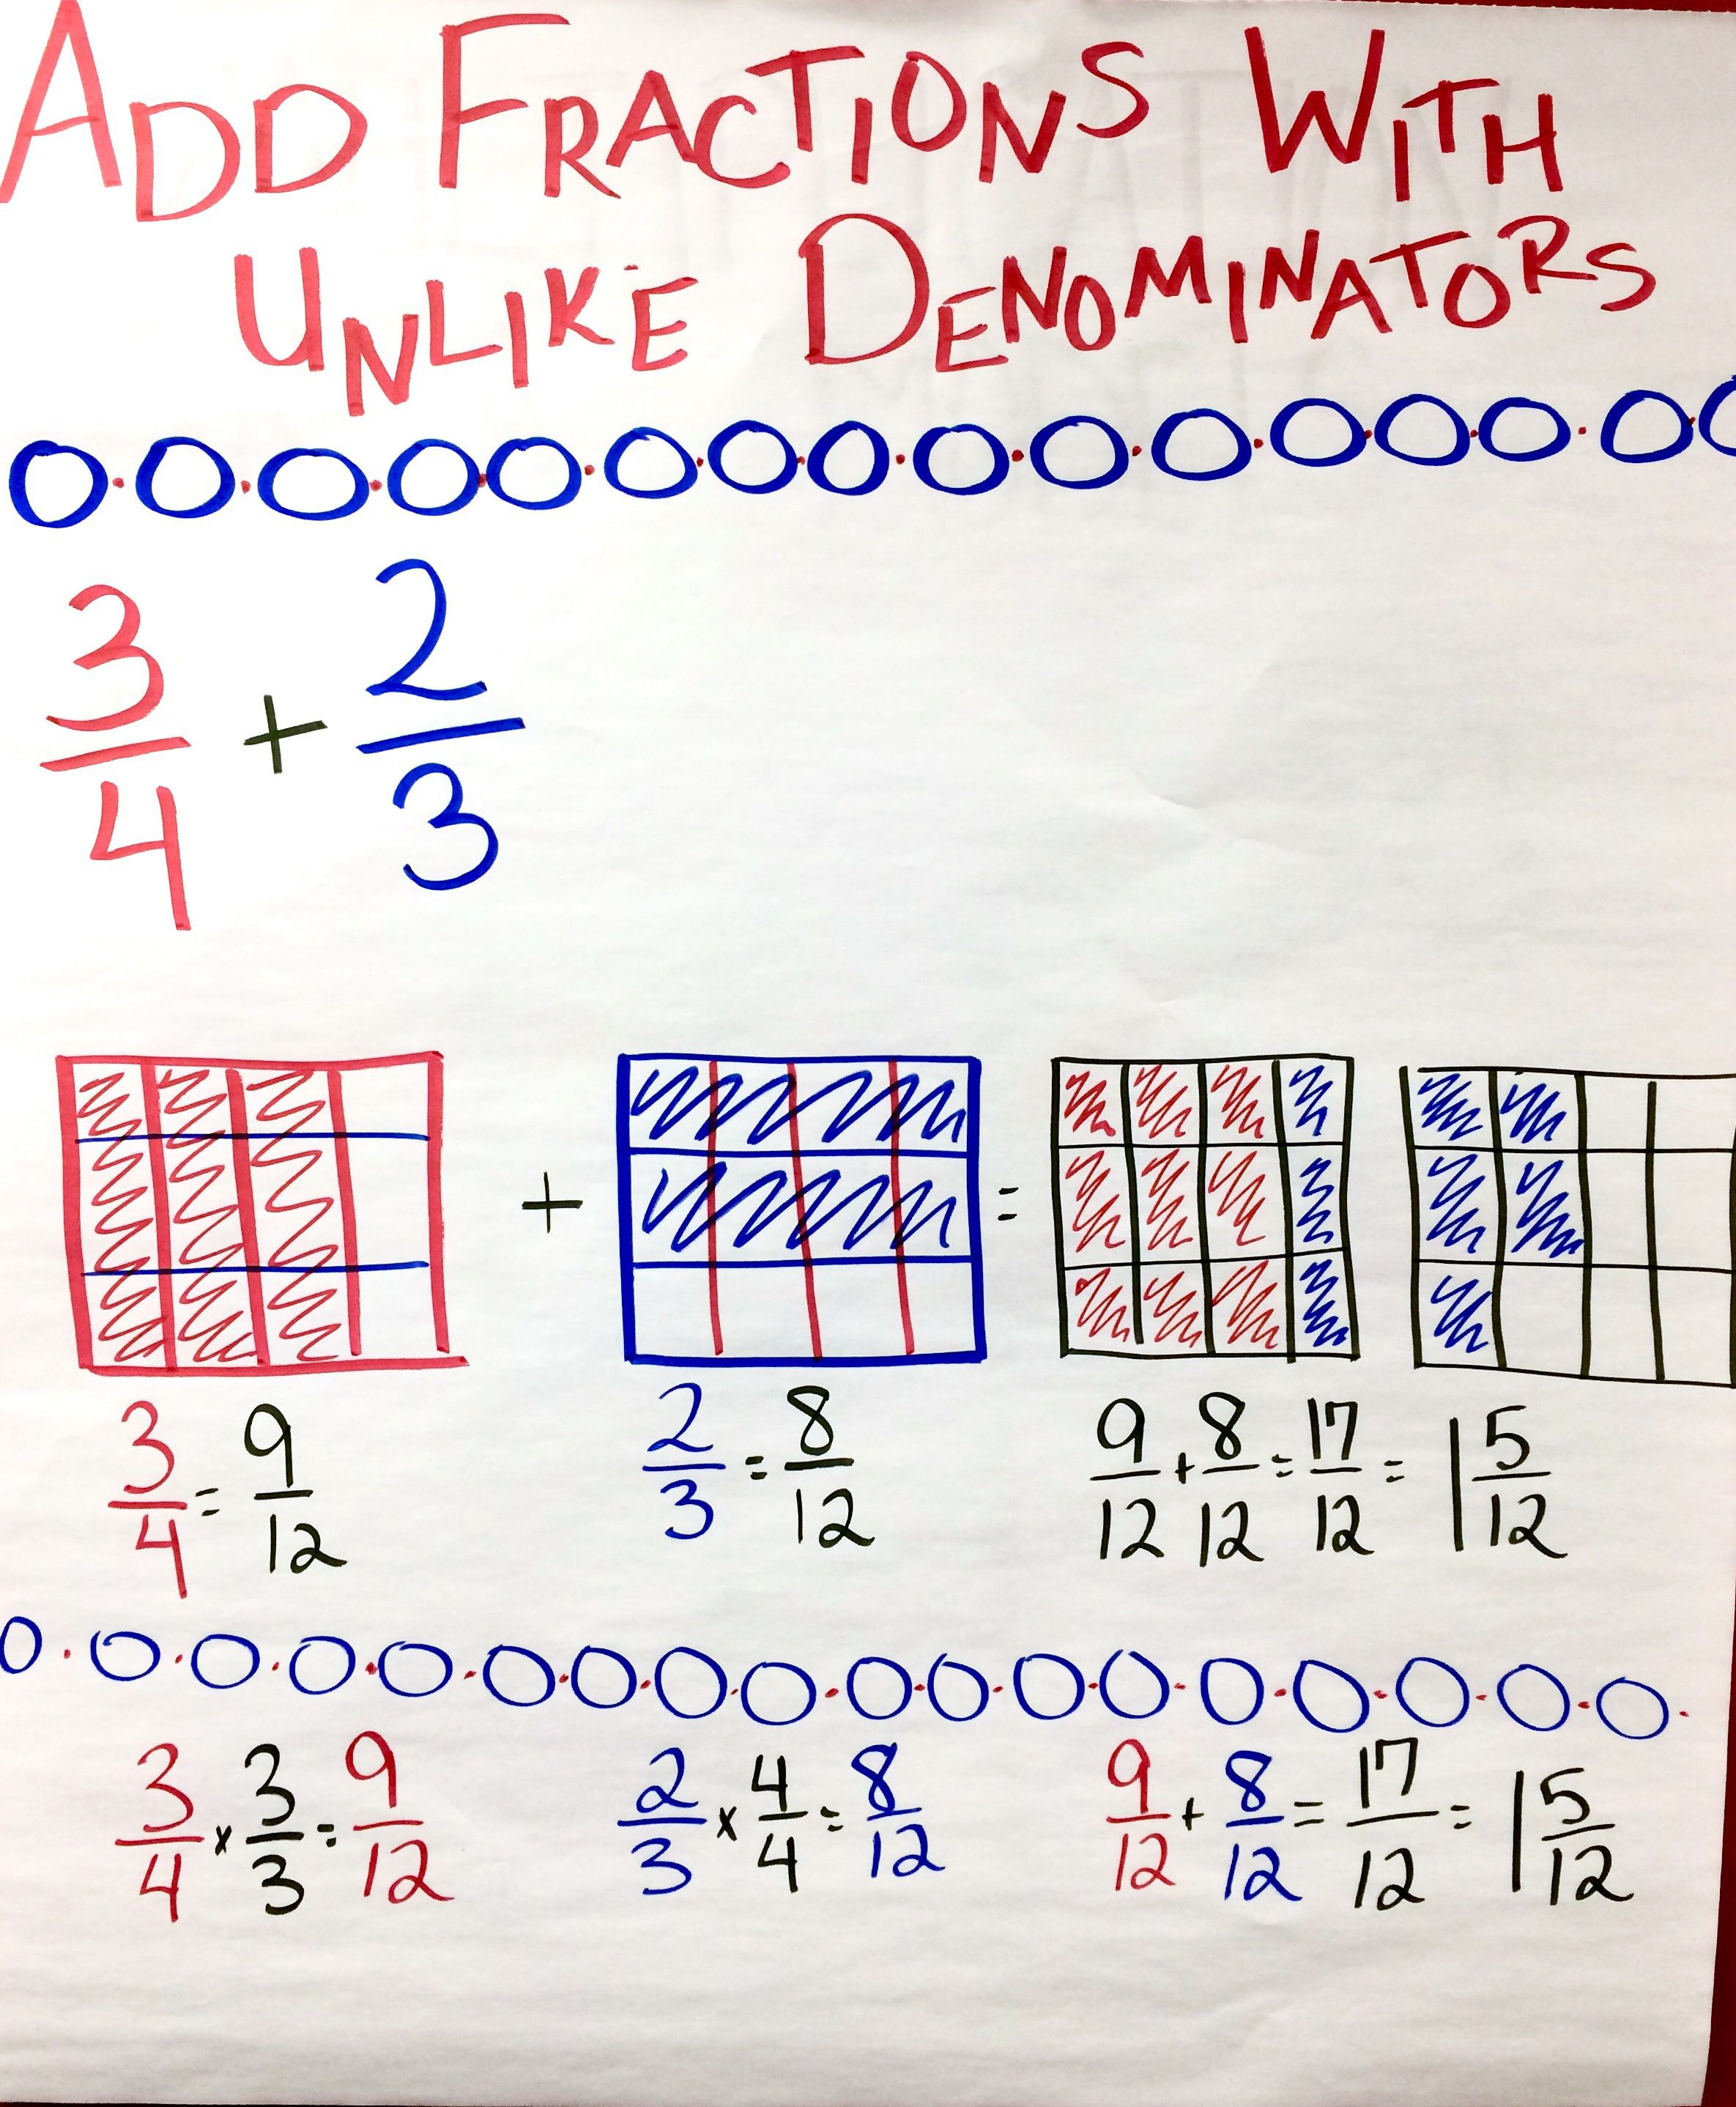 5th Grade Fractions With Unlike Denominators Worksheets   Printable  Worksheets and Activities for Teachers [ 2876 x 2370 Pixel ]